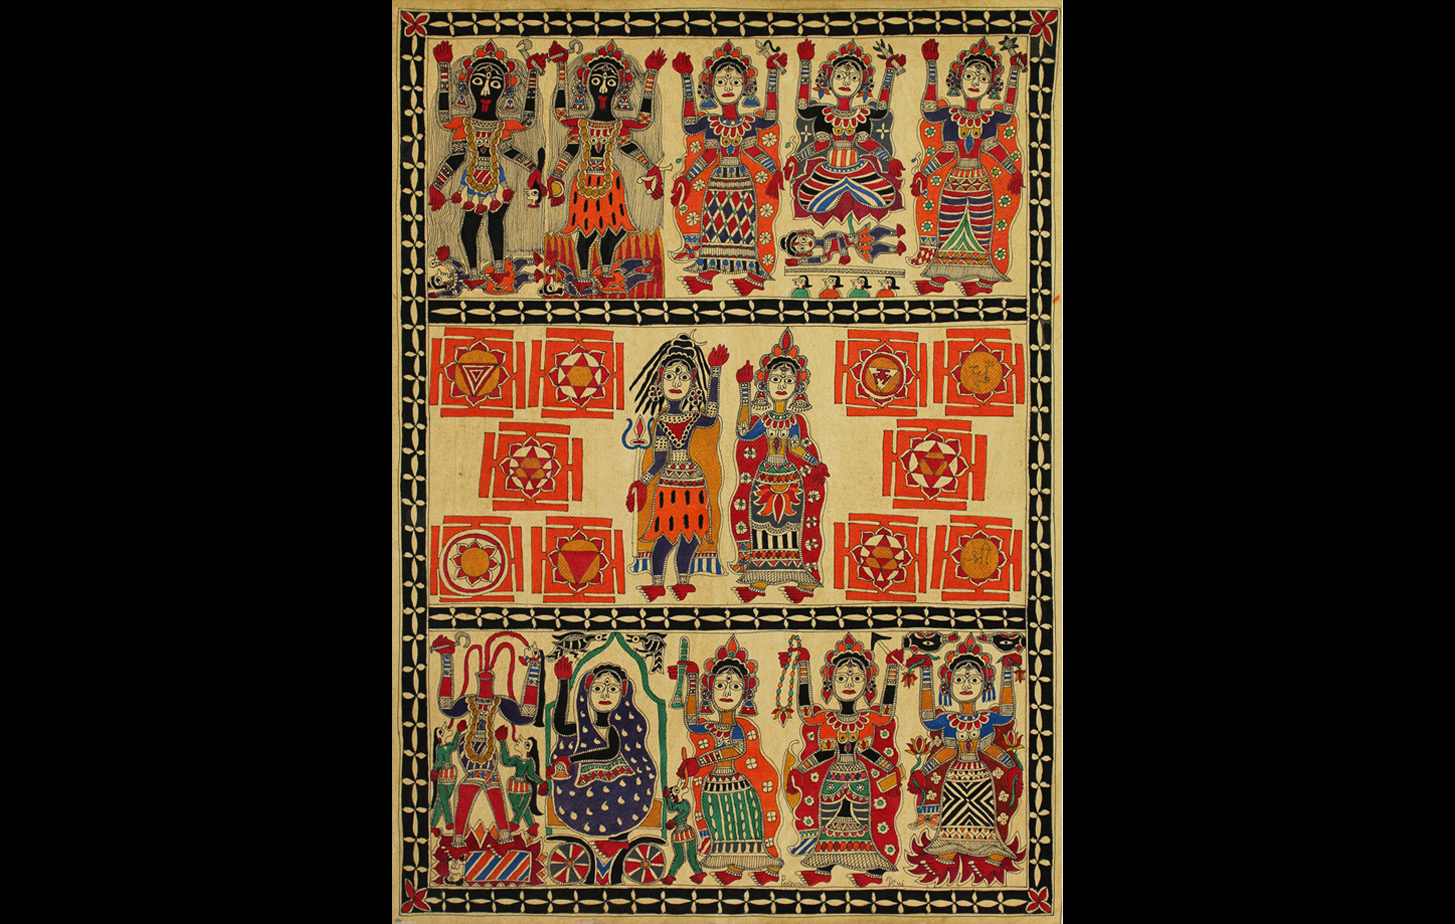 Mithila or Madhubani art depicting Shiva-Parvati in the centre, ritual geometric diagrams (or yantras), and the dasa mahavidyas or the ten great feminines. All aspects of the Tantra branch of Hinduism.